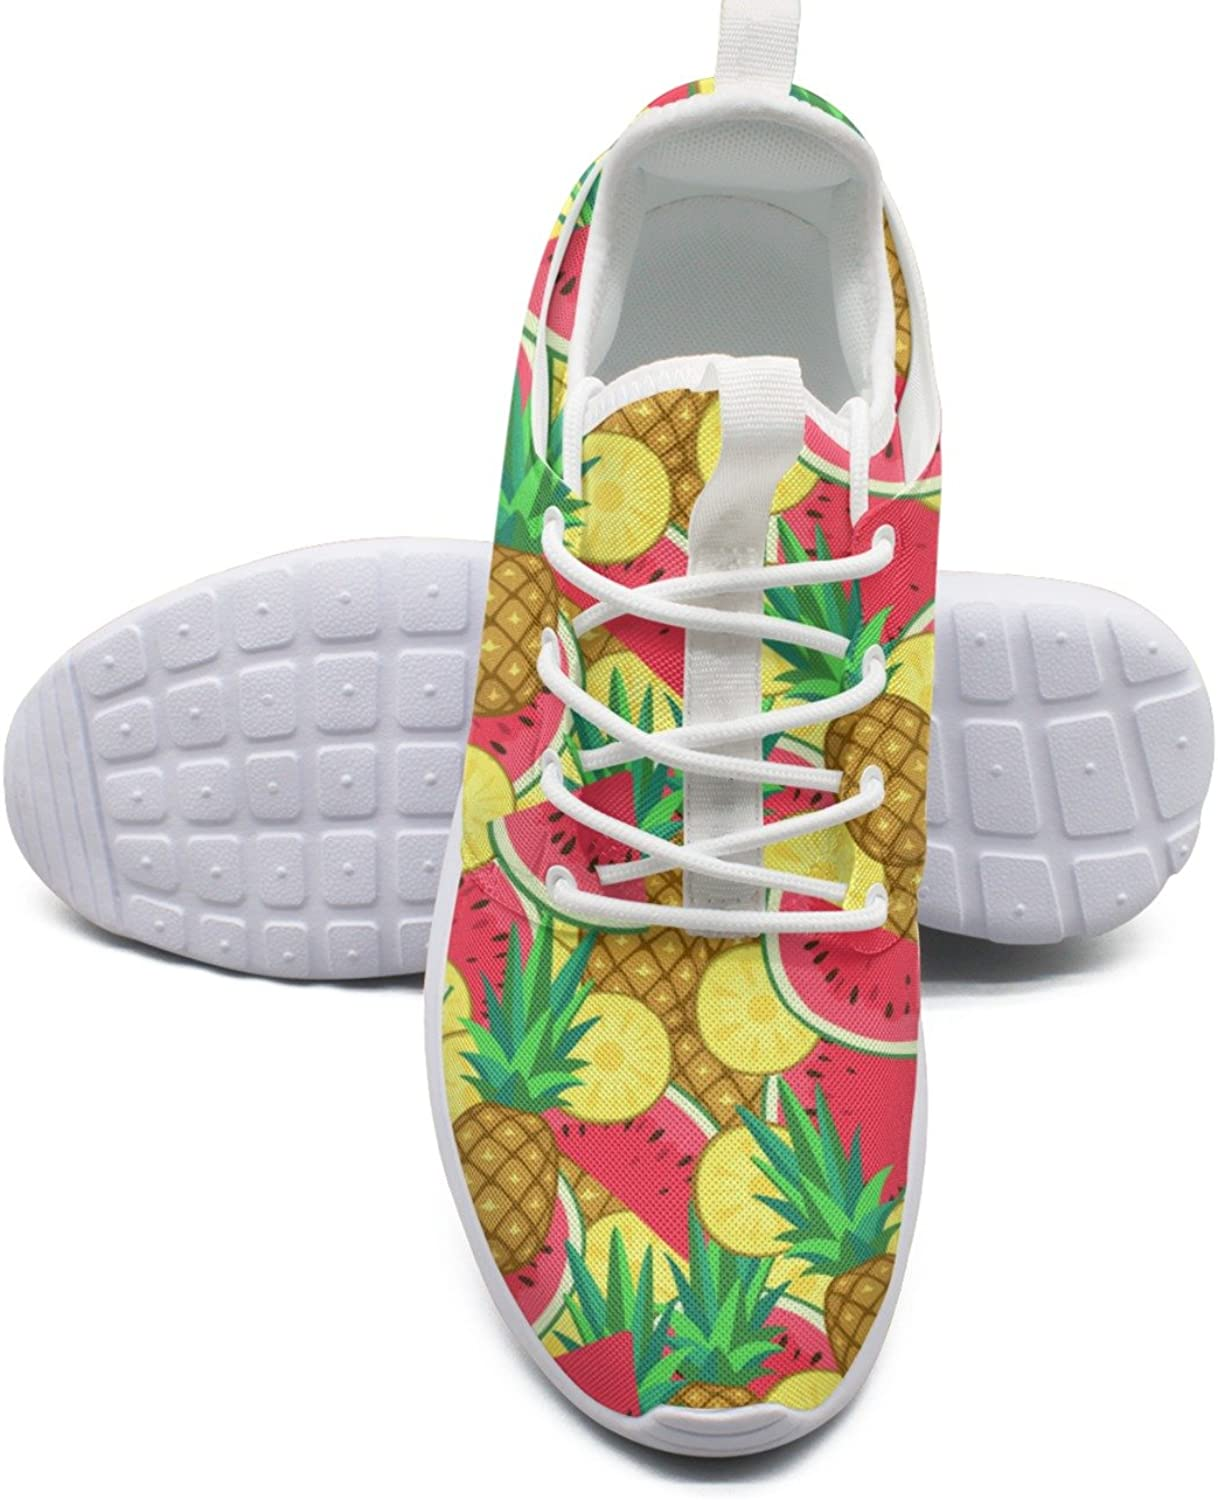 ERSER Watermelon and Pineapple Running shoes for Women Light Weight